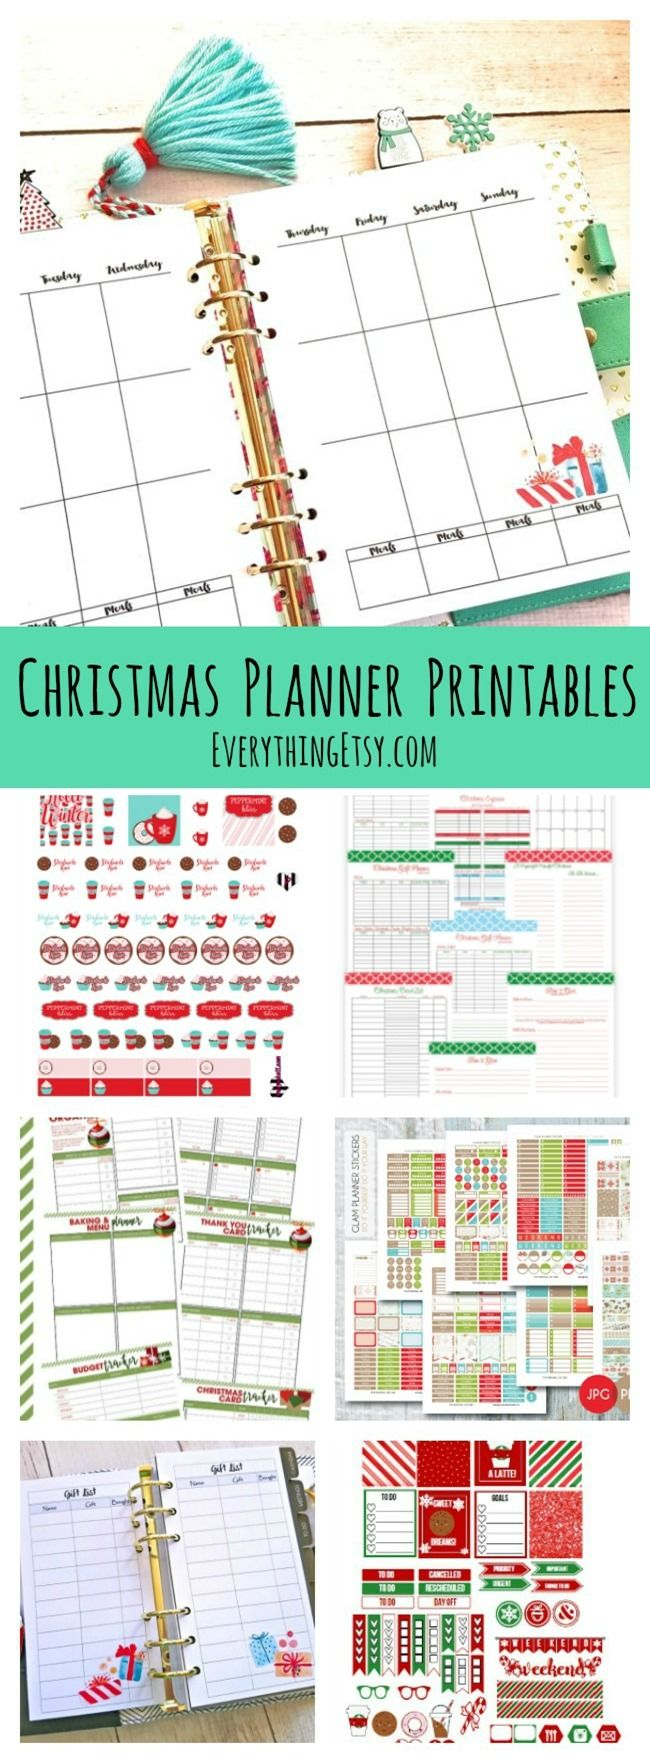 Christmas Planner Printables - Free Holiday Planners and Planner Stickers - EverythingEtsy.com